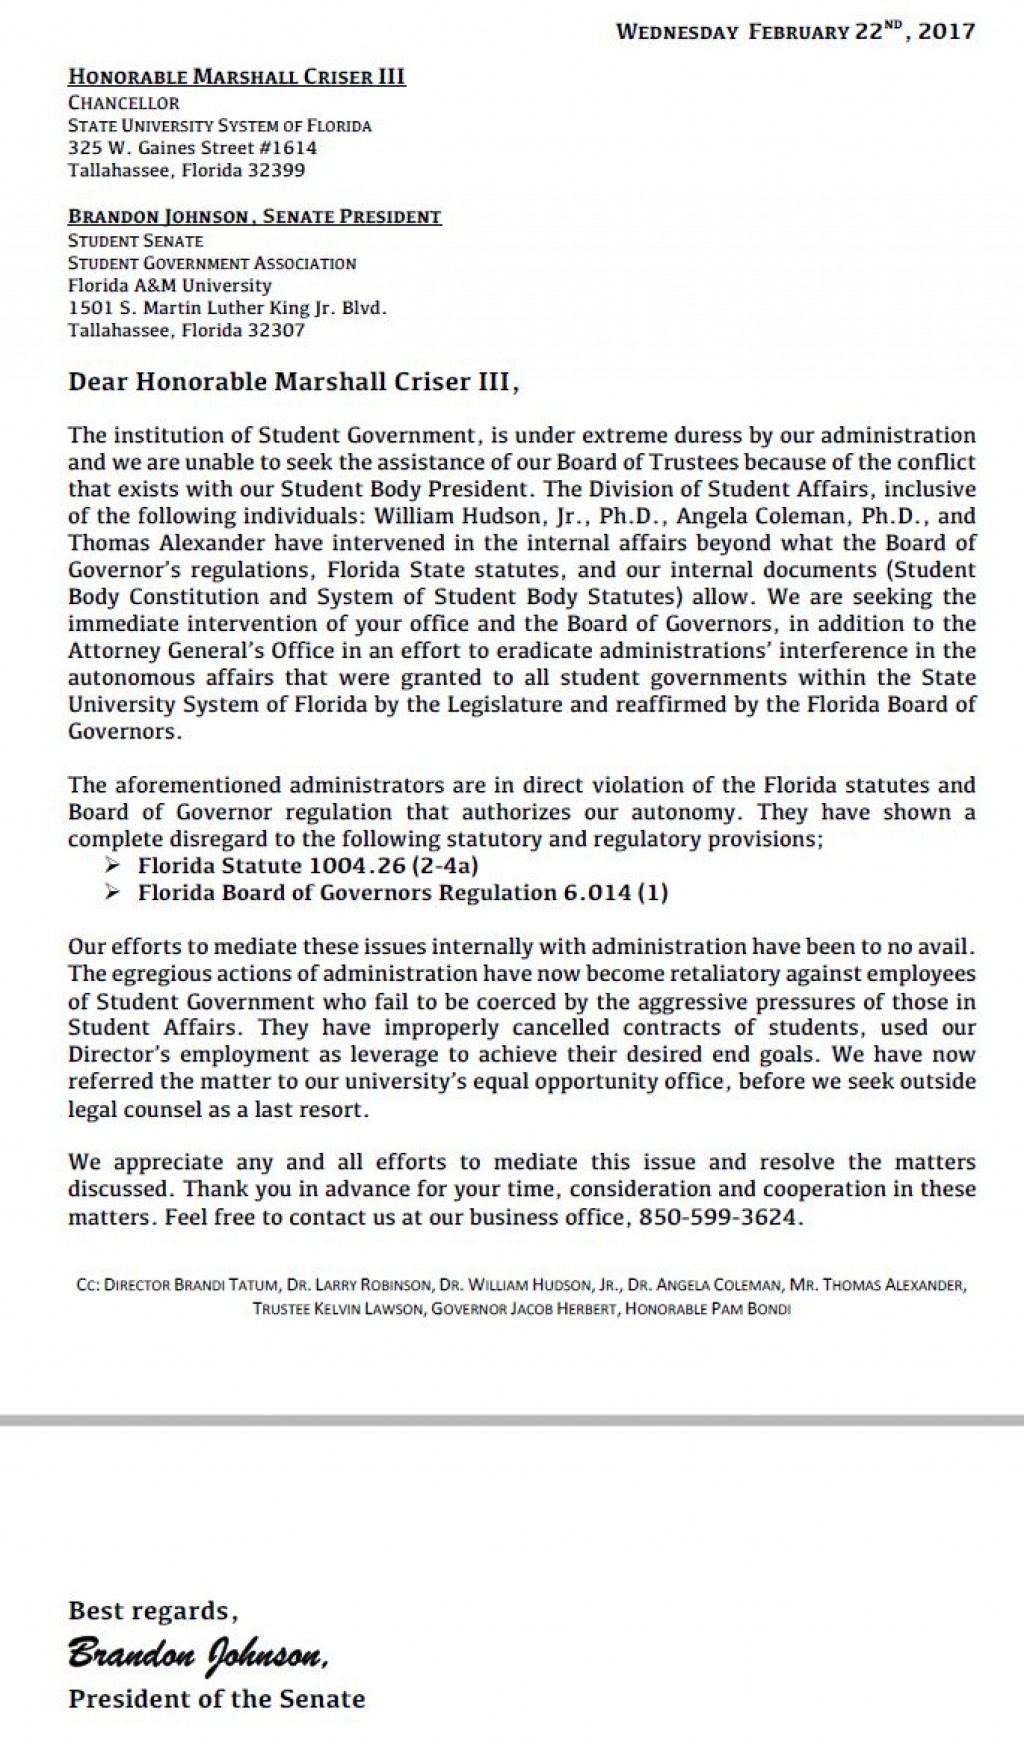 Update famuan receives sga letter to chancellor criser today the famuan received the formal letter that was dated for feb 22 the letter is below spiritdancerdesigns Gallery